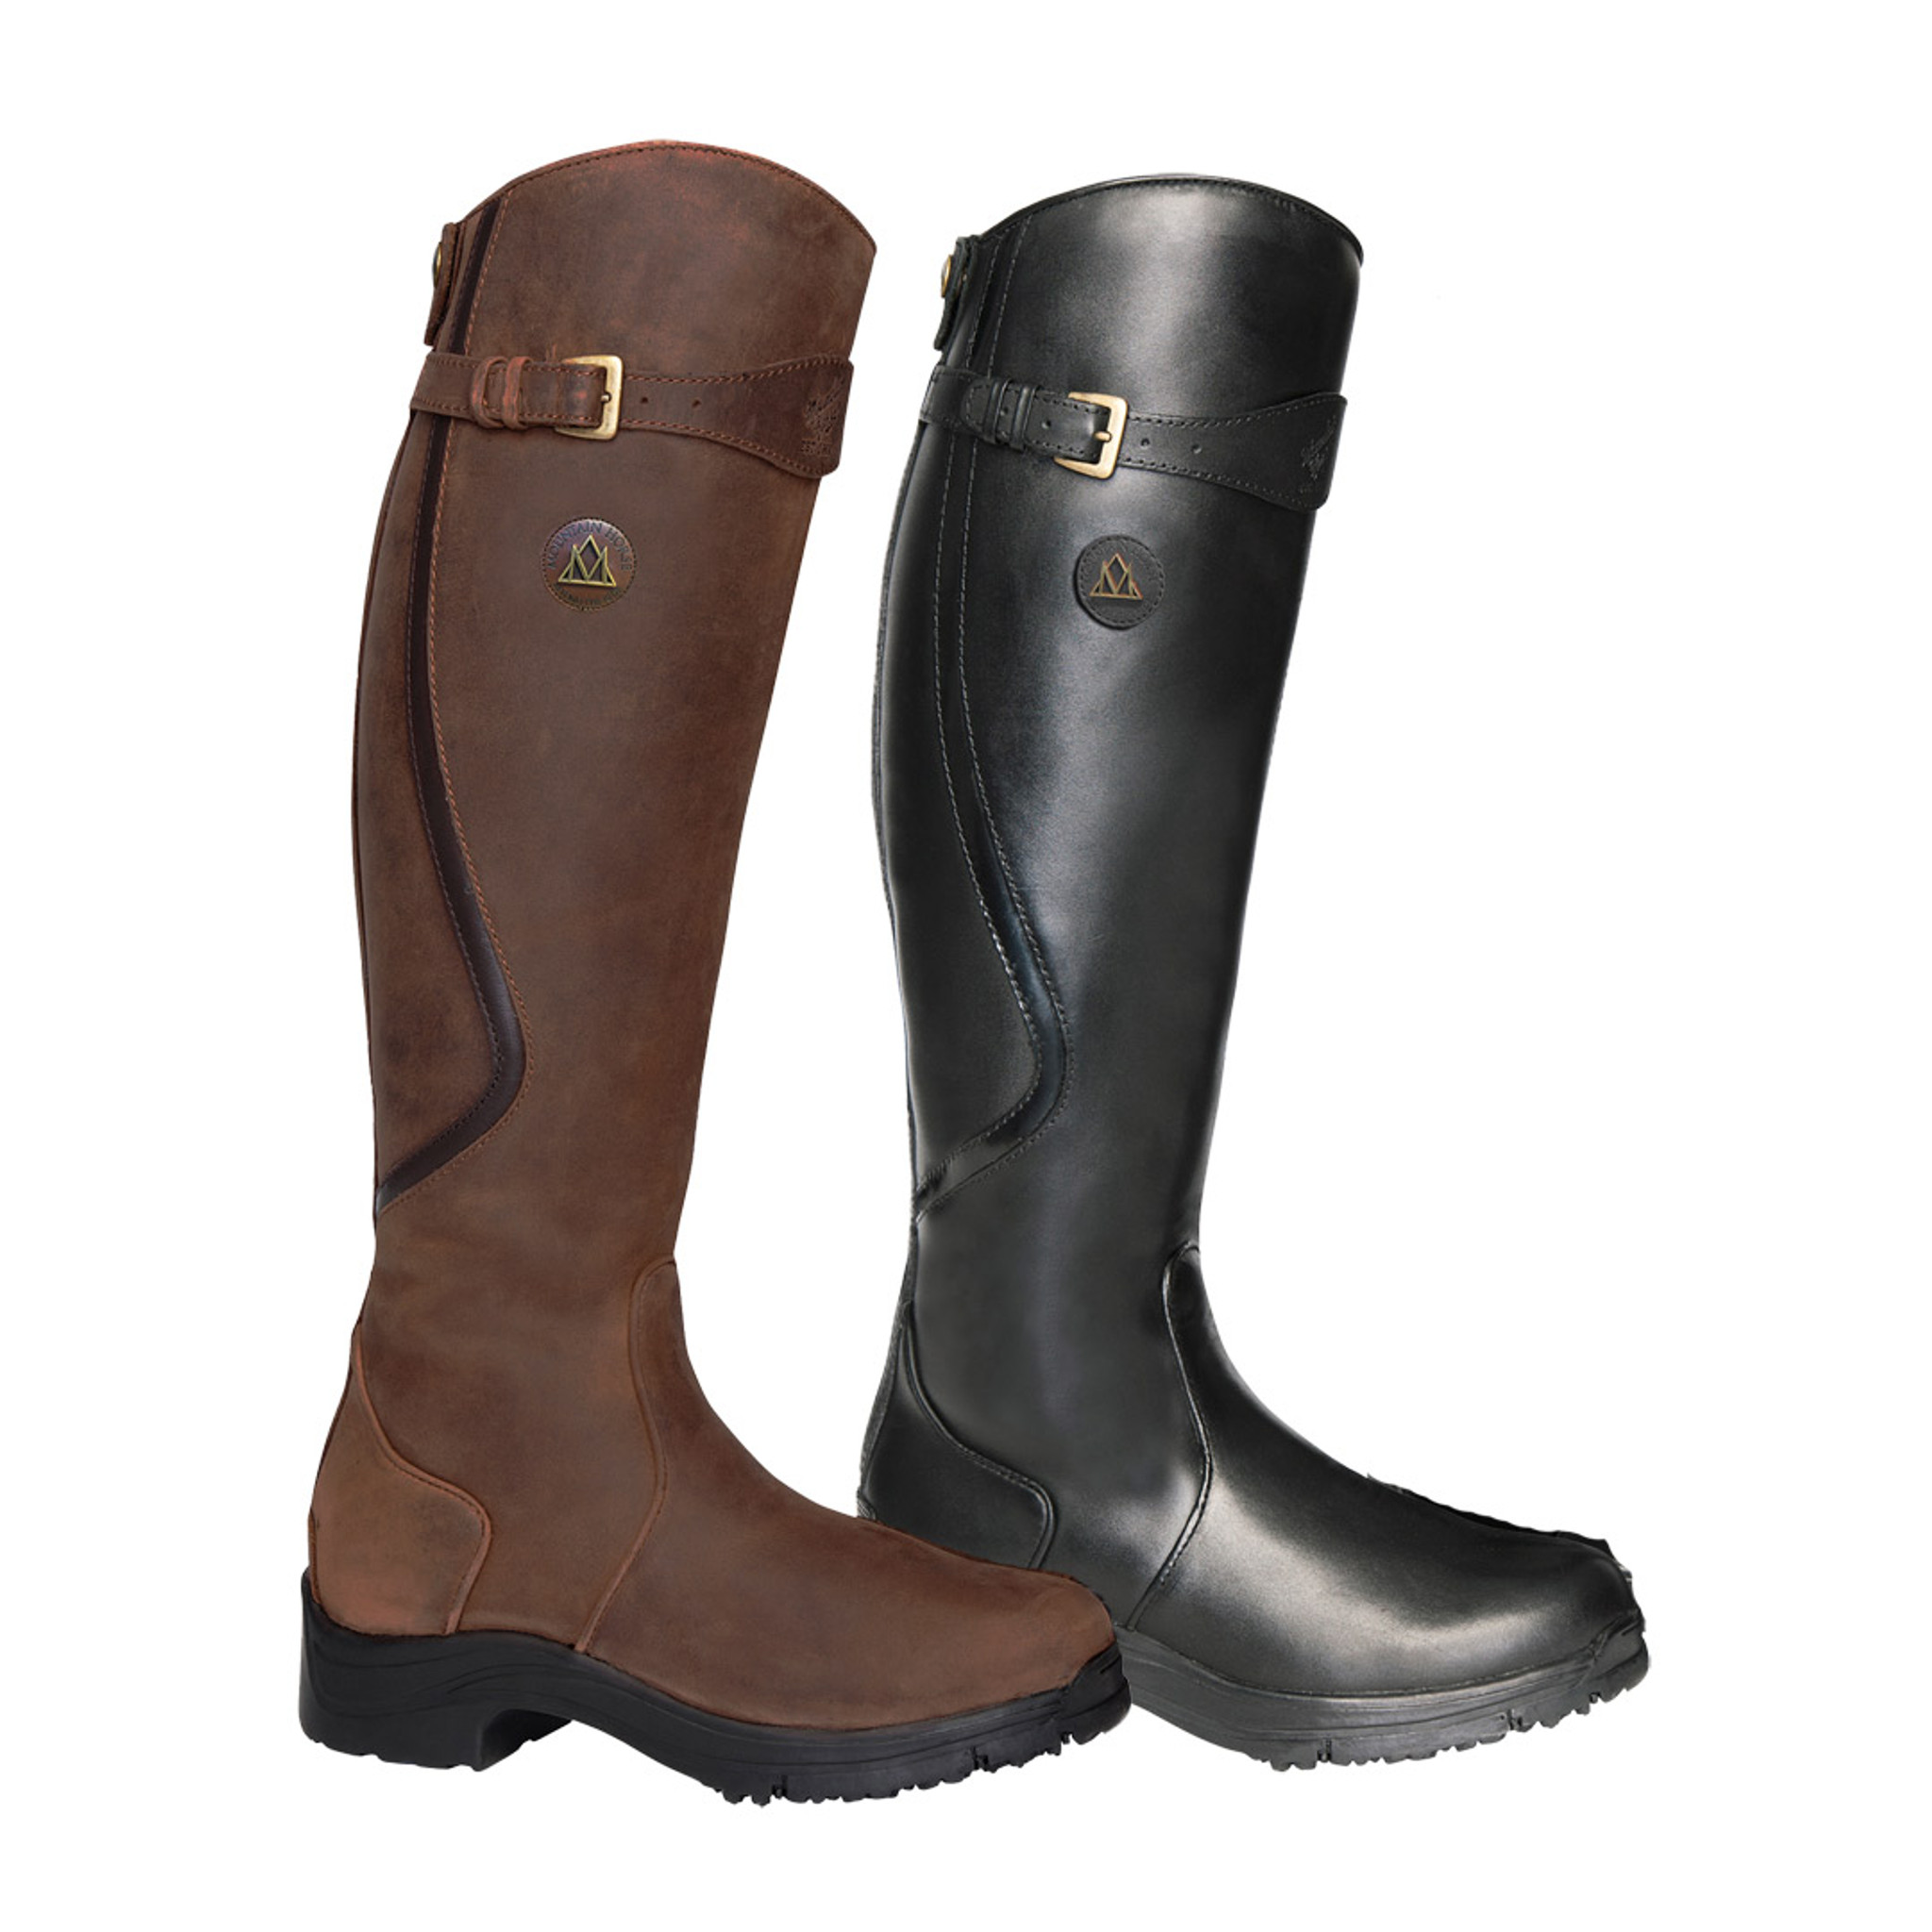 Ladies Snowy River Tall Winter Boots